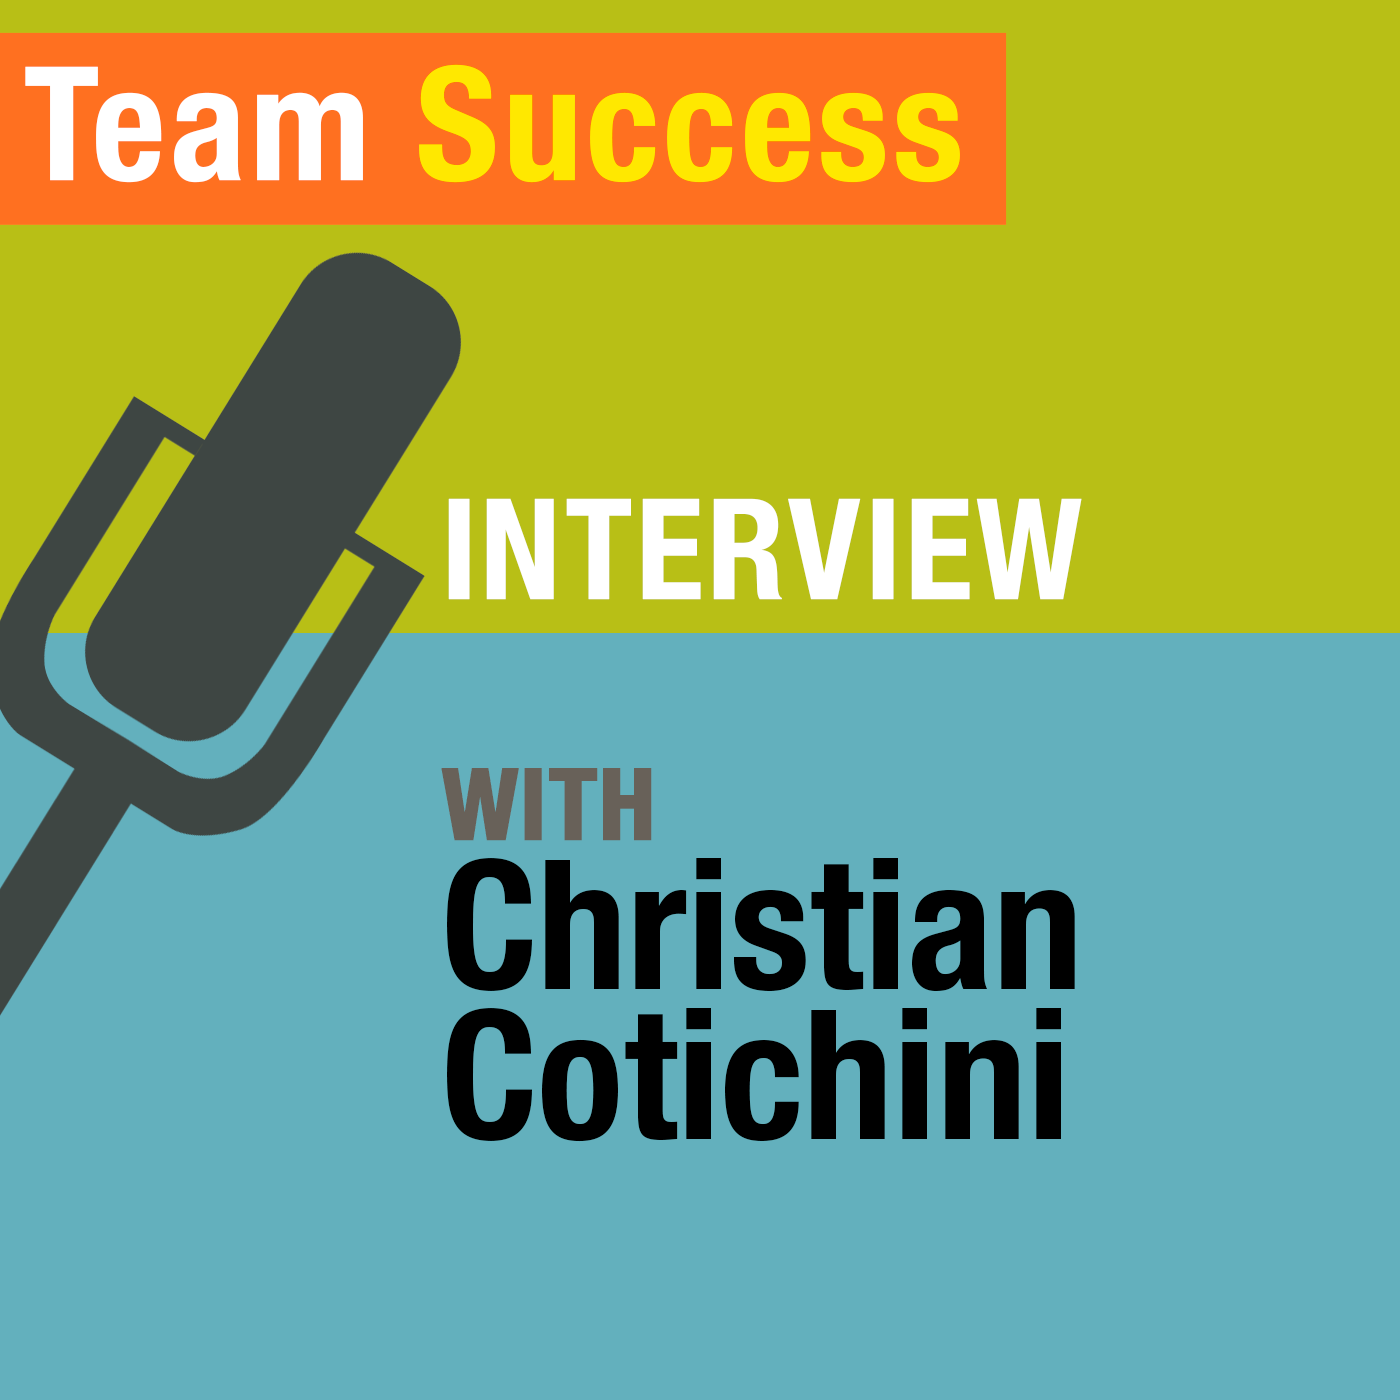 An Interview With Christian Cotichini